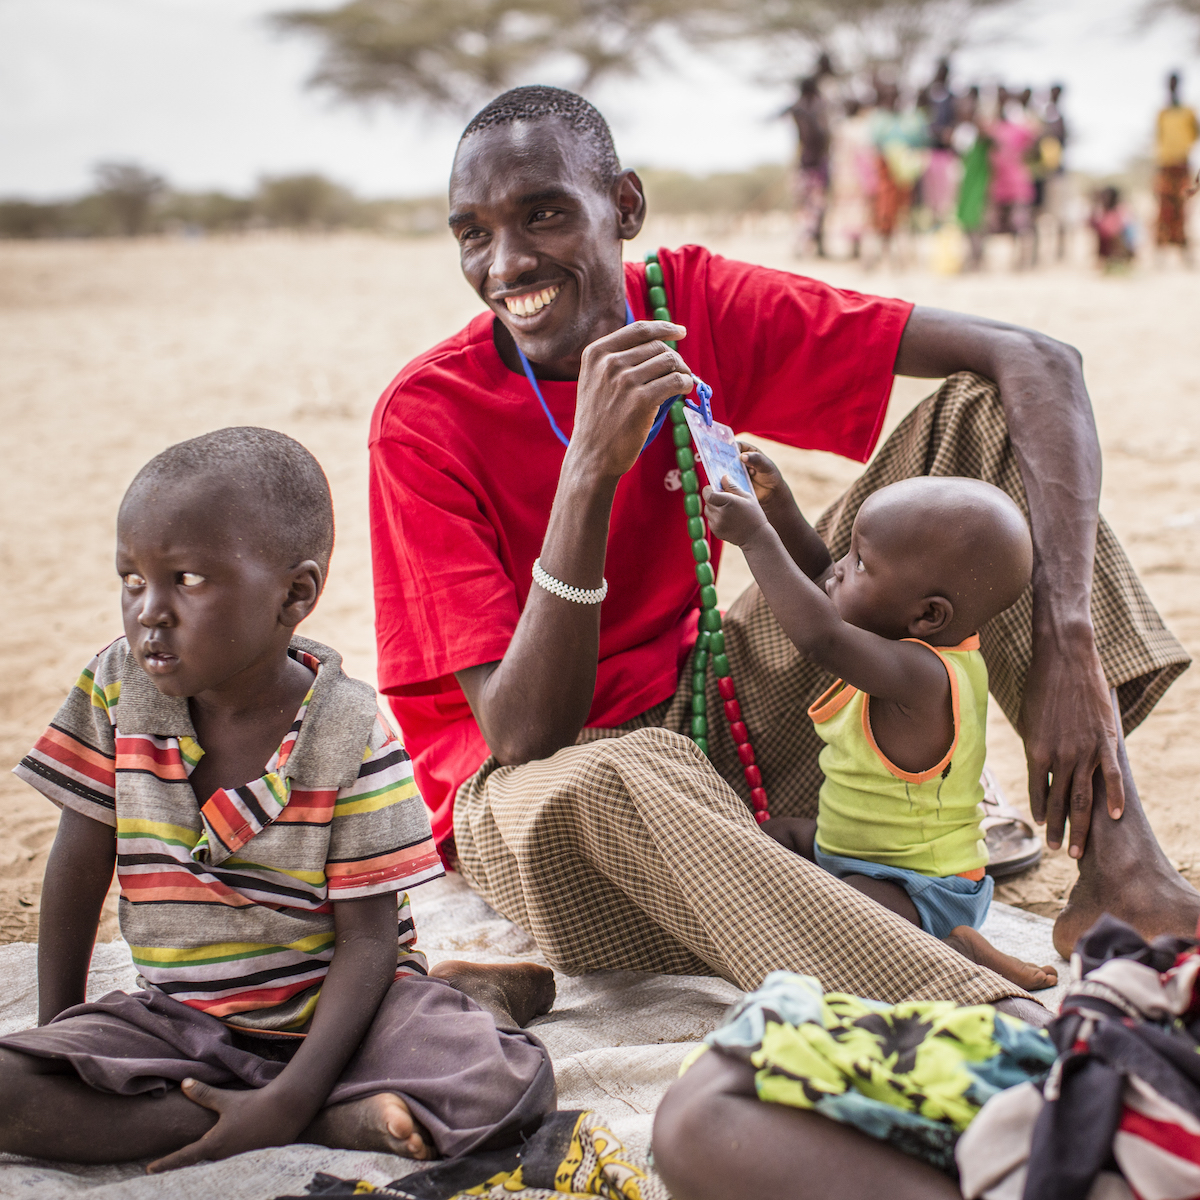 I decided to be a volunteer to help my community. Lucas has been a community health volunteer in Turkwel, Kenya for over a decade. He looks after 107 households, helping to diagnose children with pneumonia, malnutrition, & encouraging families to seek earlier medical care.